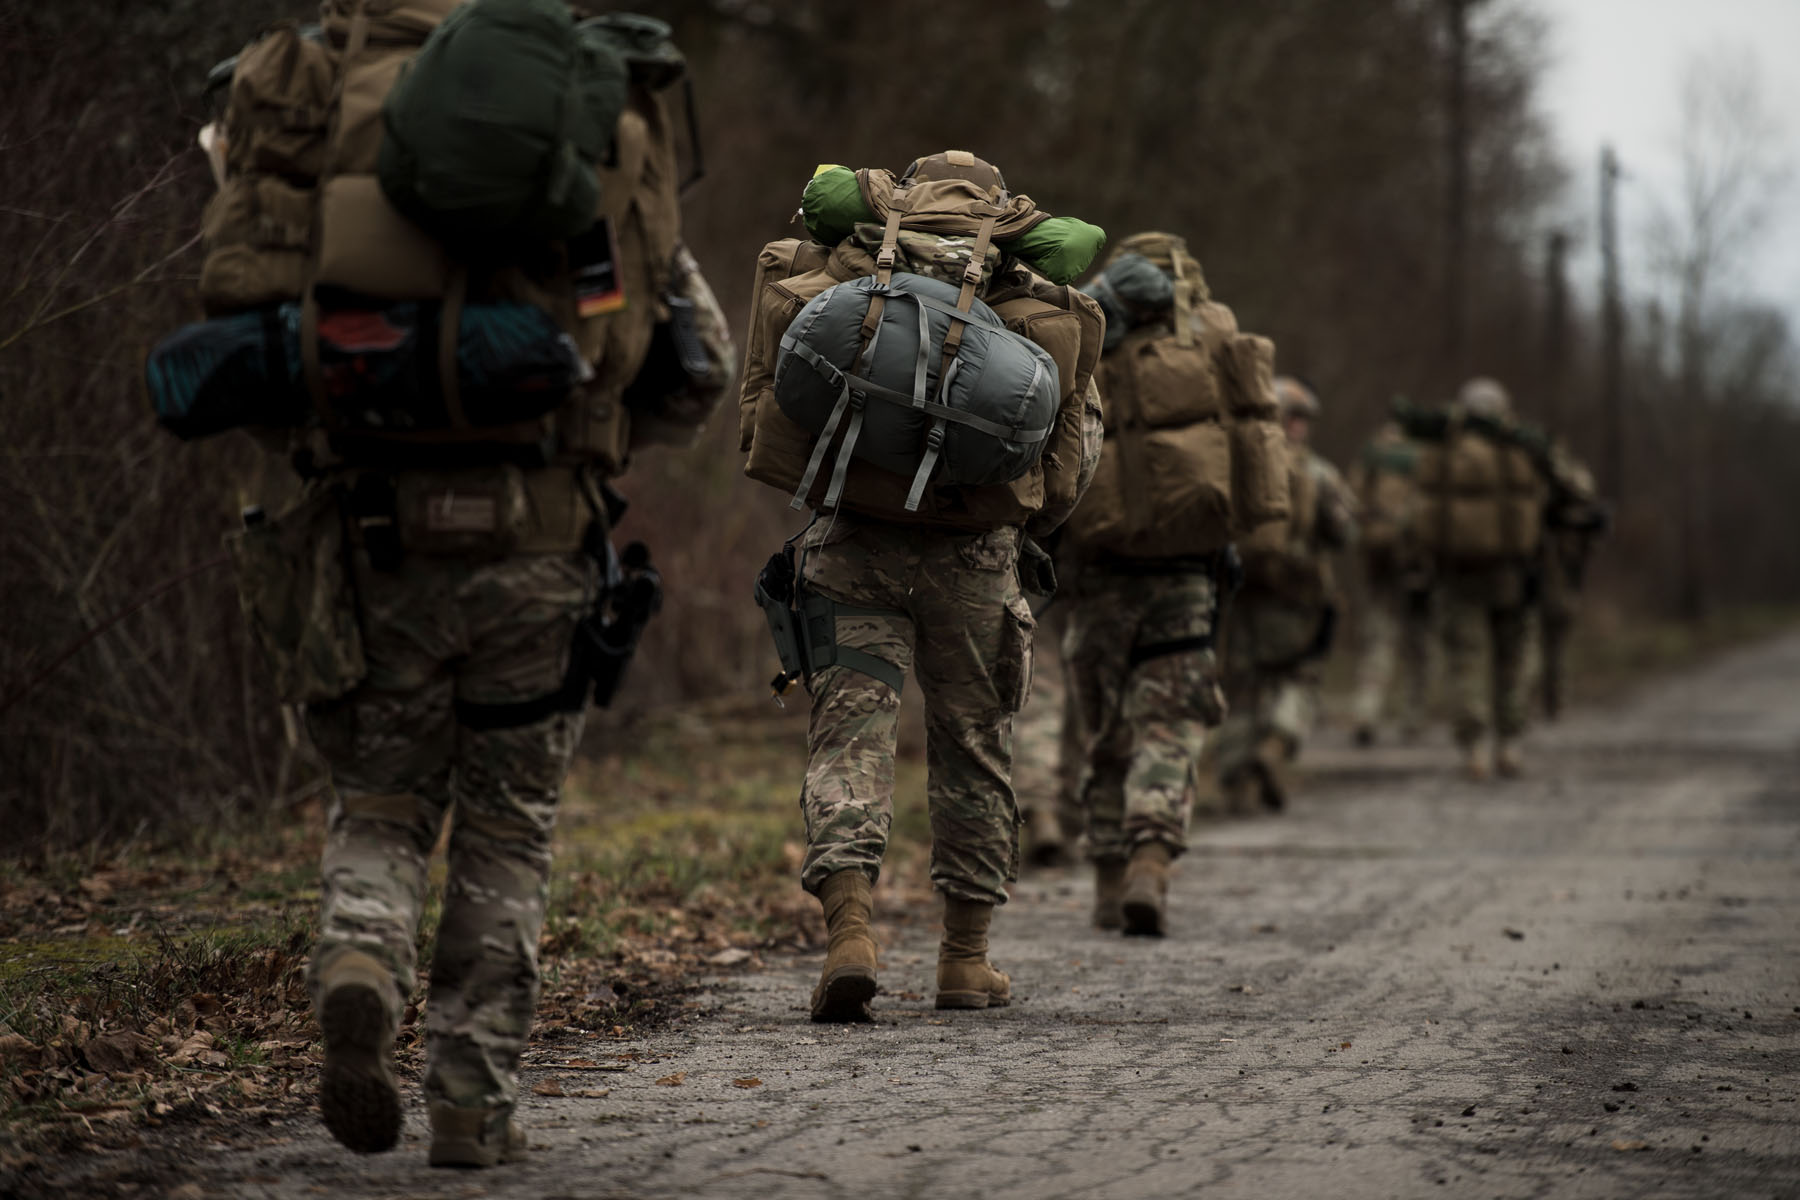 Thousands of US Troops Will Be Stuck Overseas Under Sweeping New Travel Ban